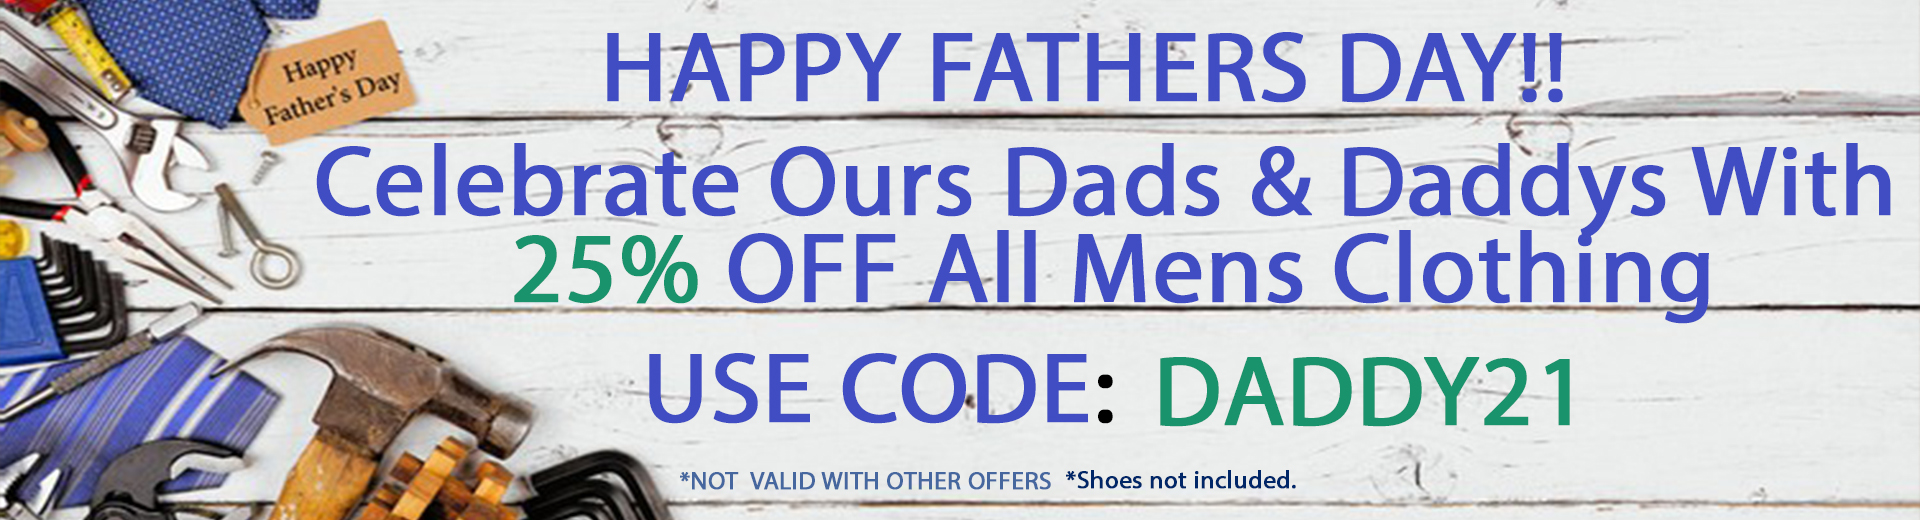 25% mens clothing using code DADDY21